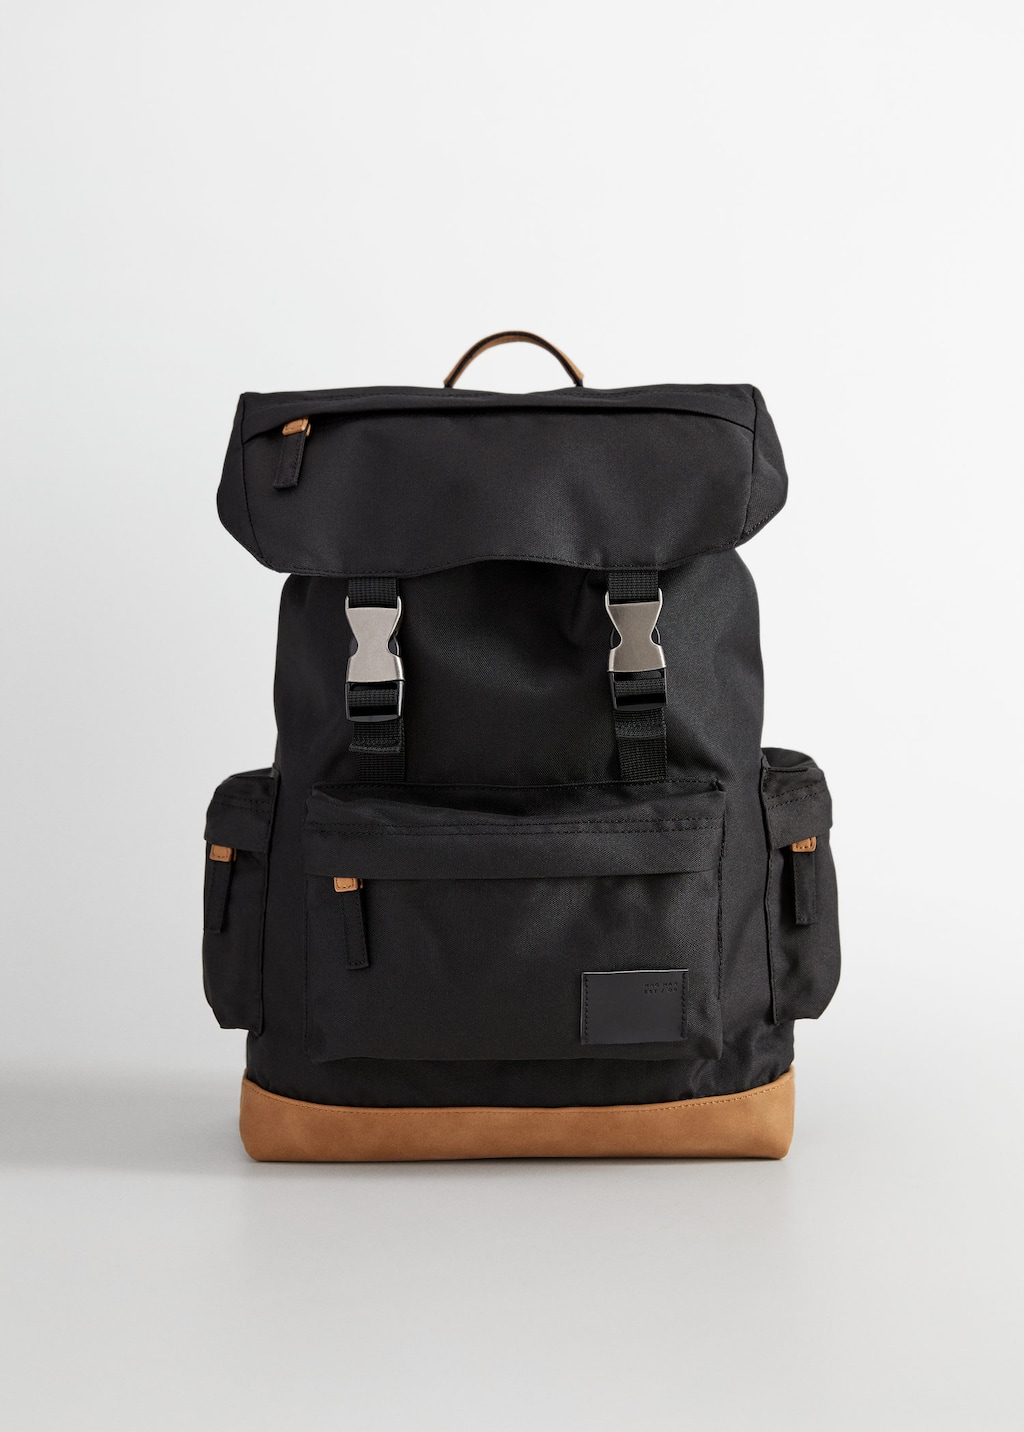 Functional Work Backpacks